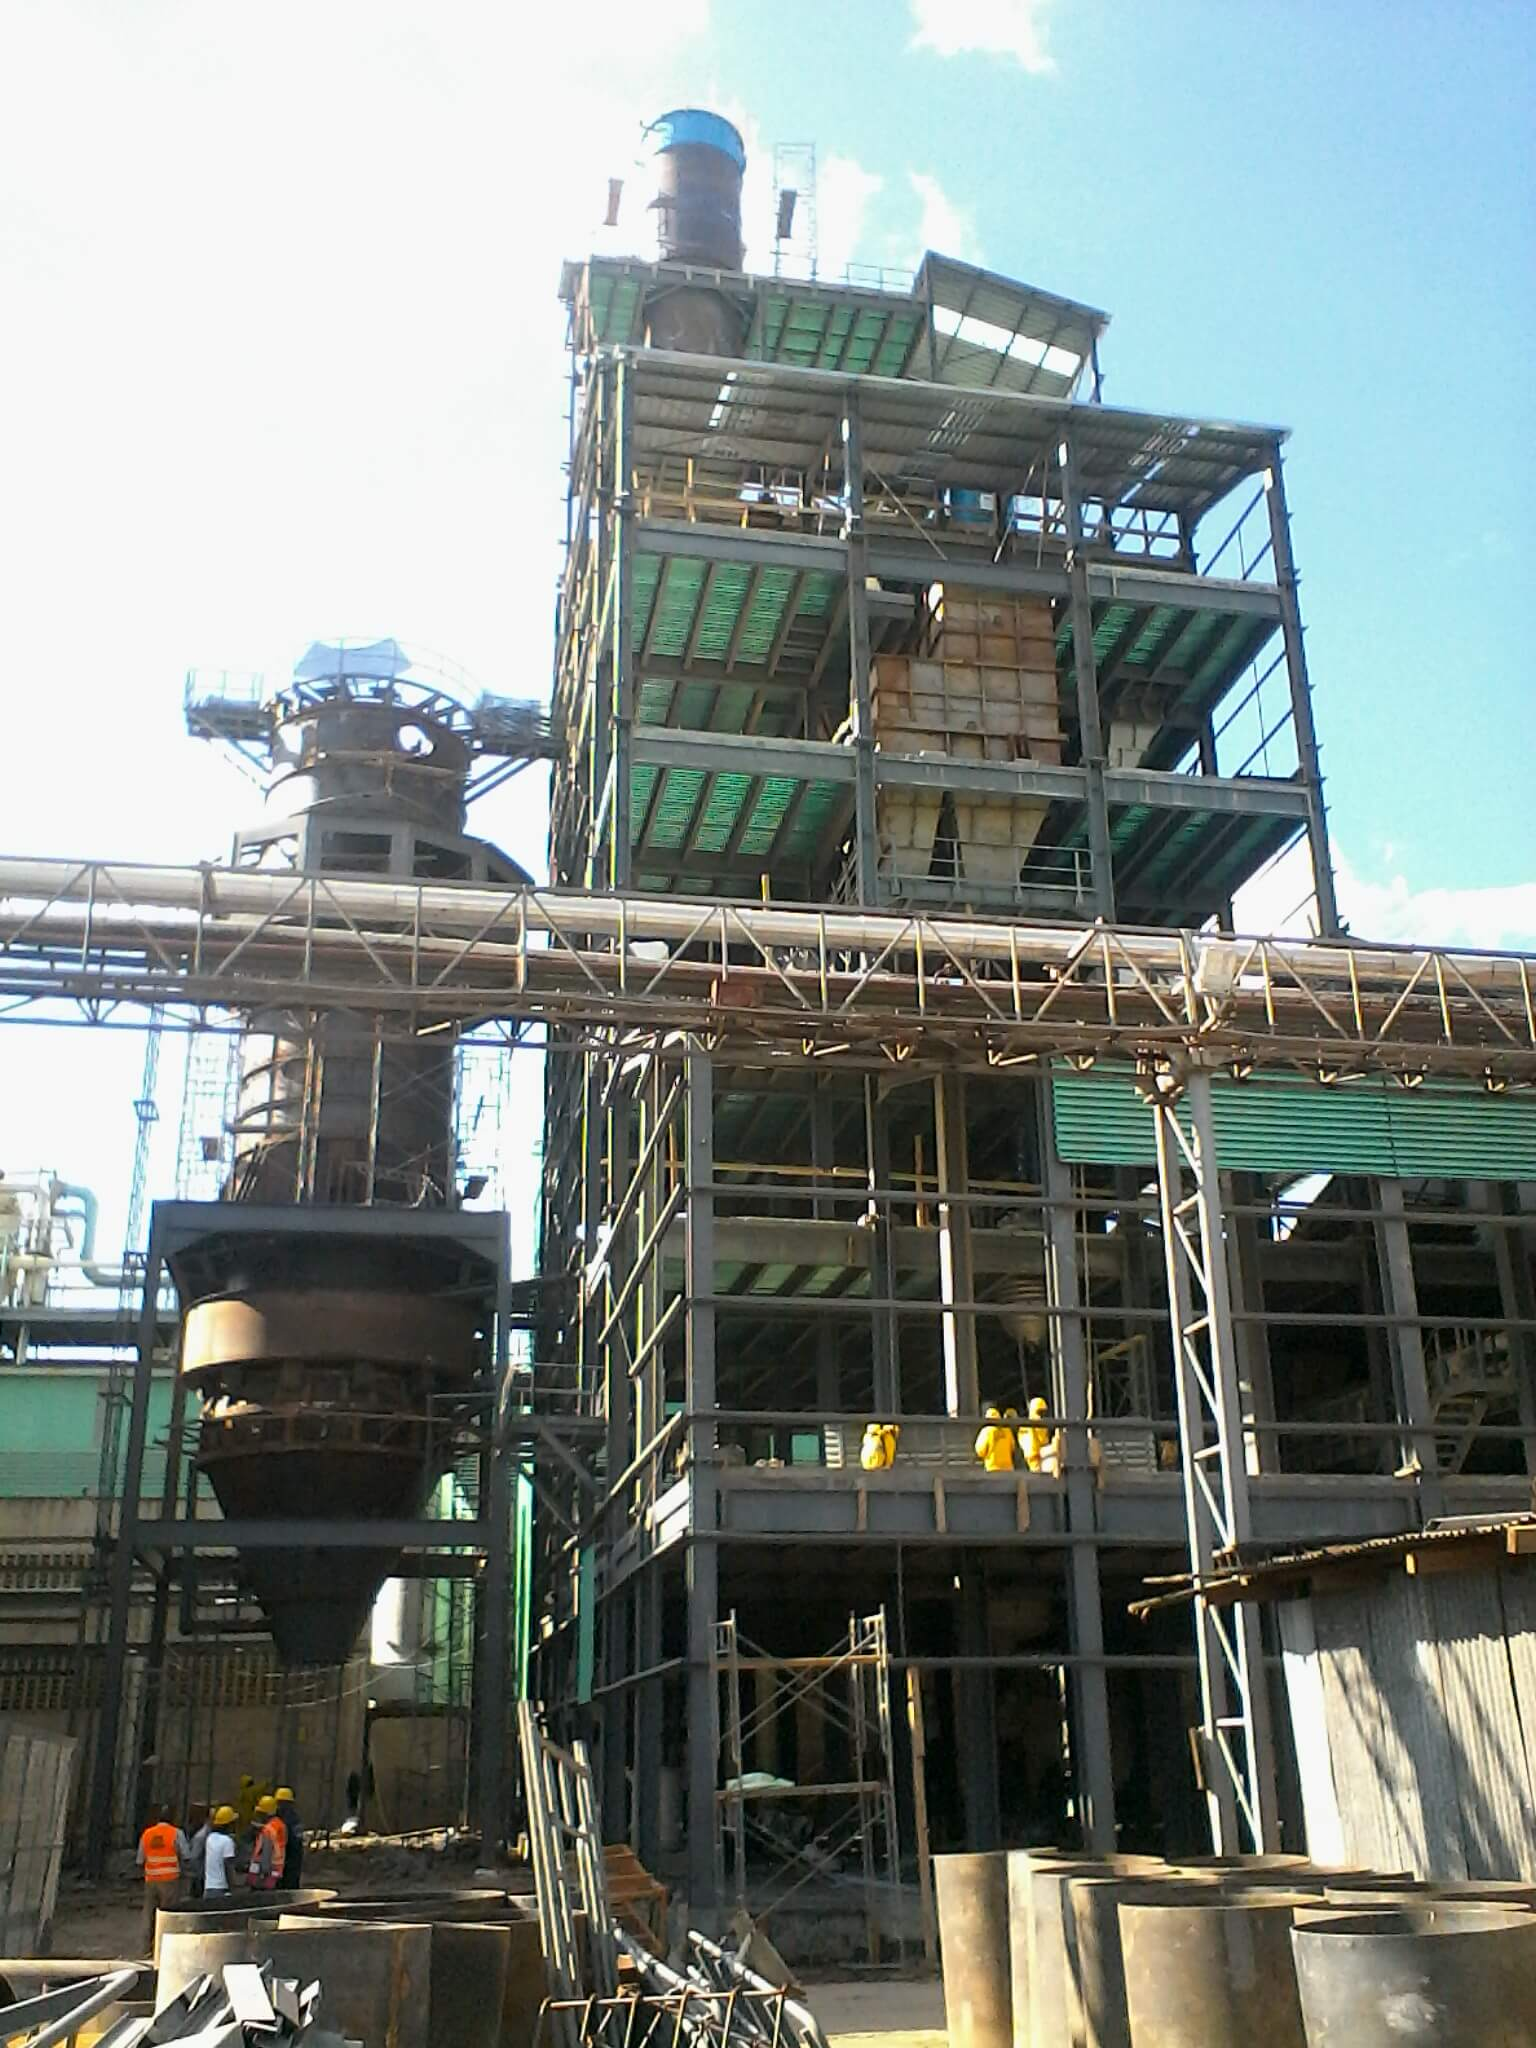 Cooking Oil Refinery & Detergent Factory-Thika,Kenya 2014 010